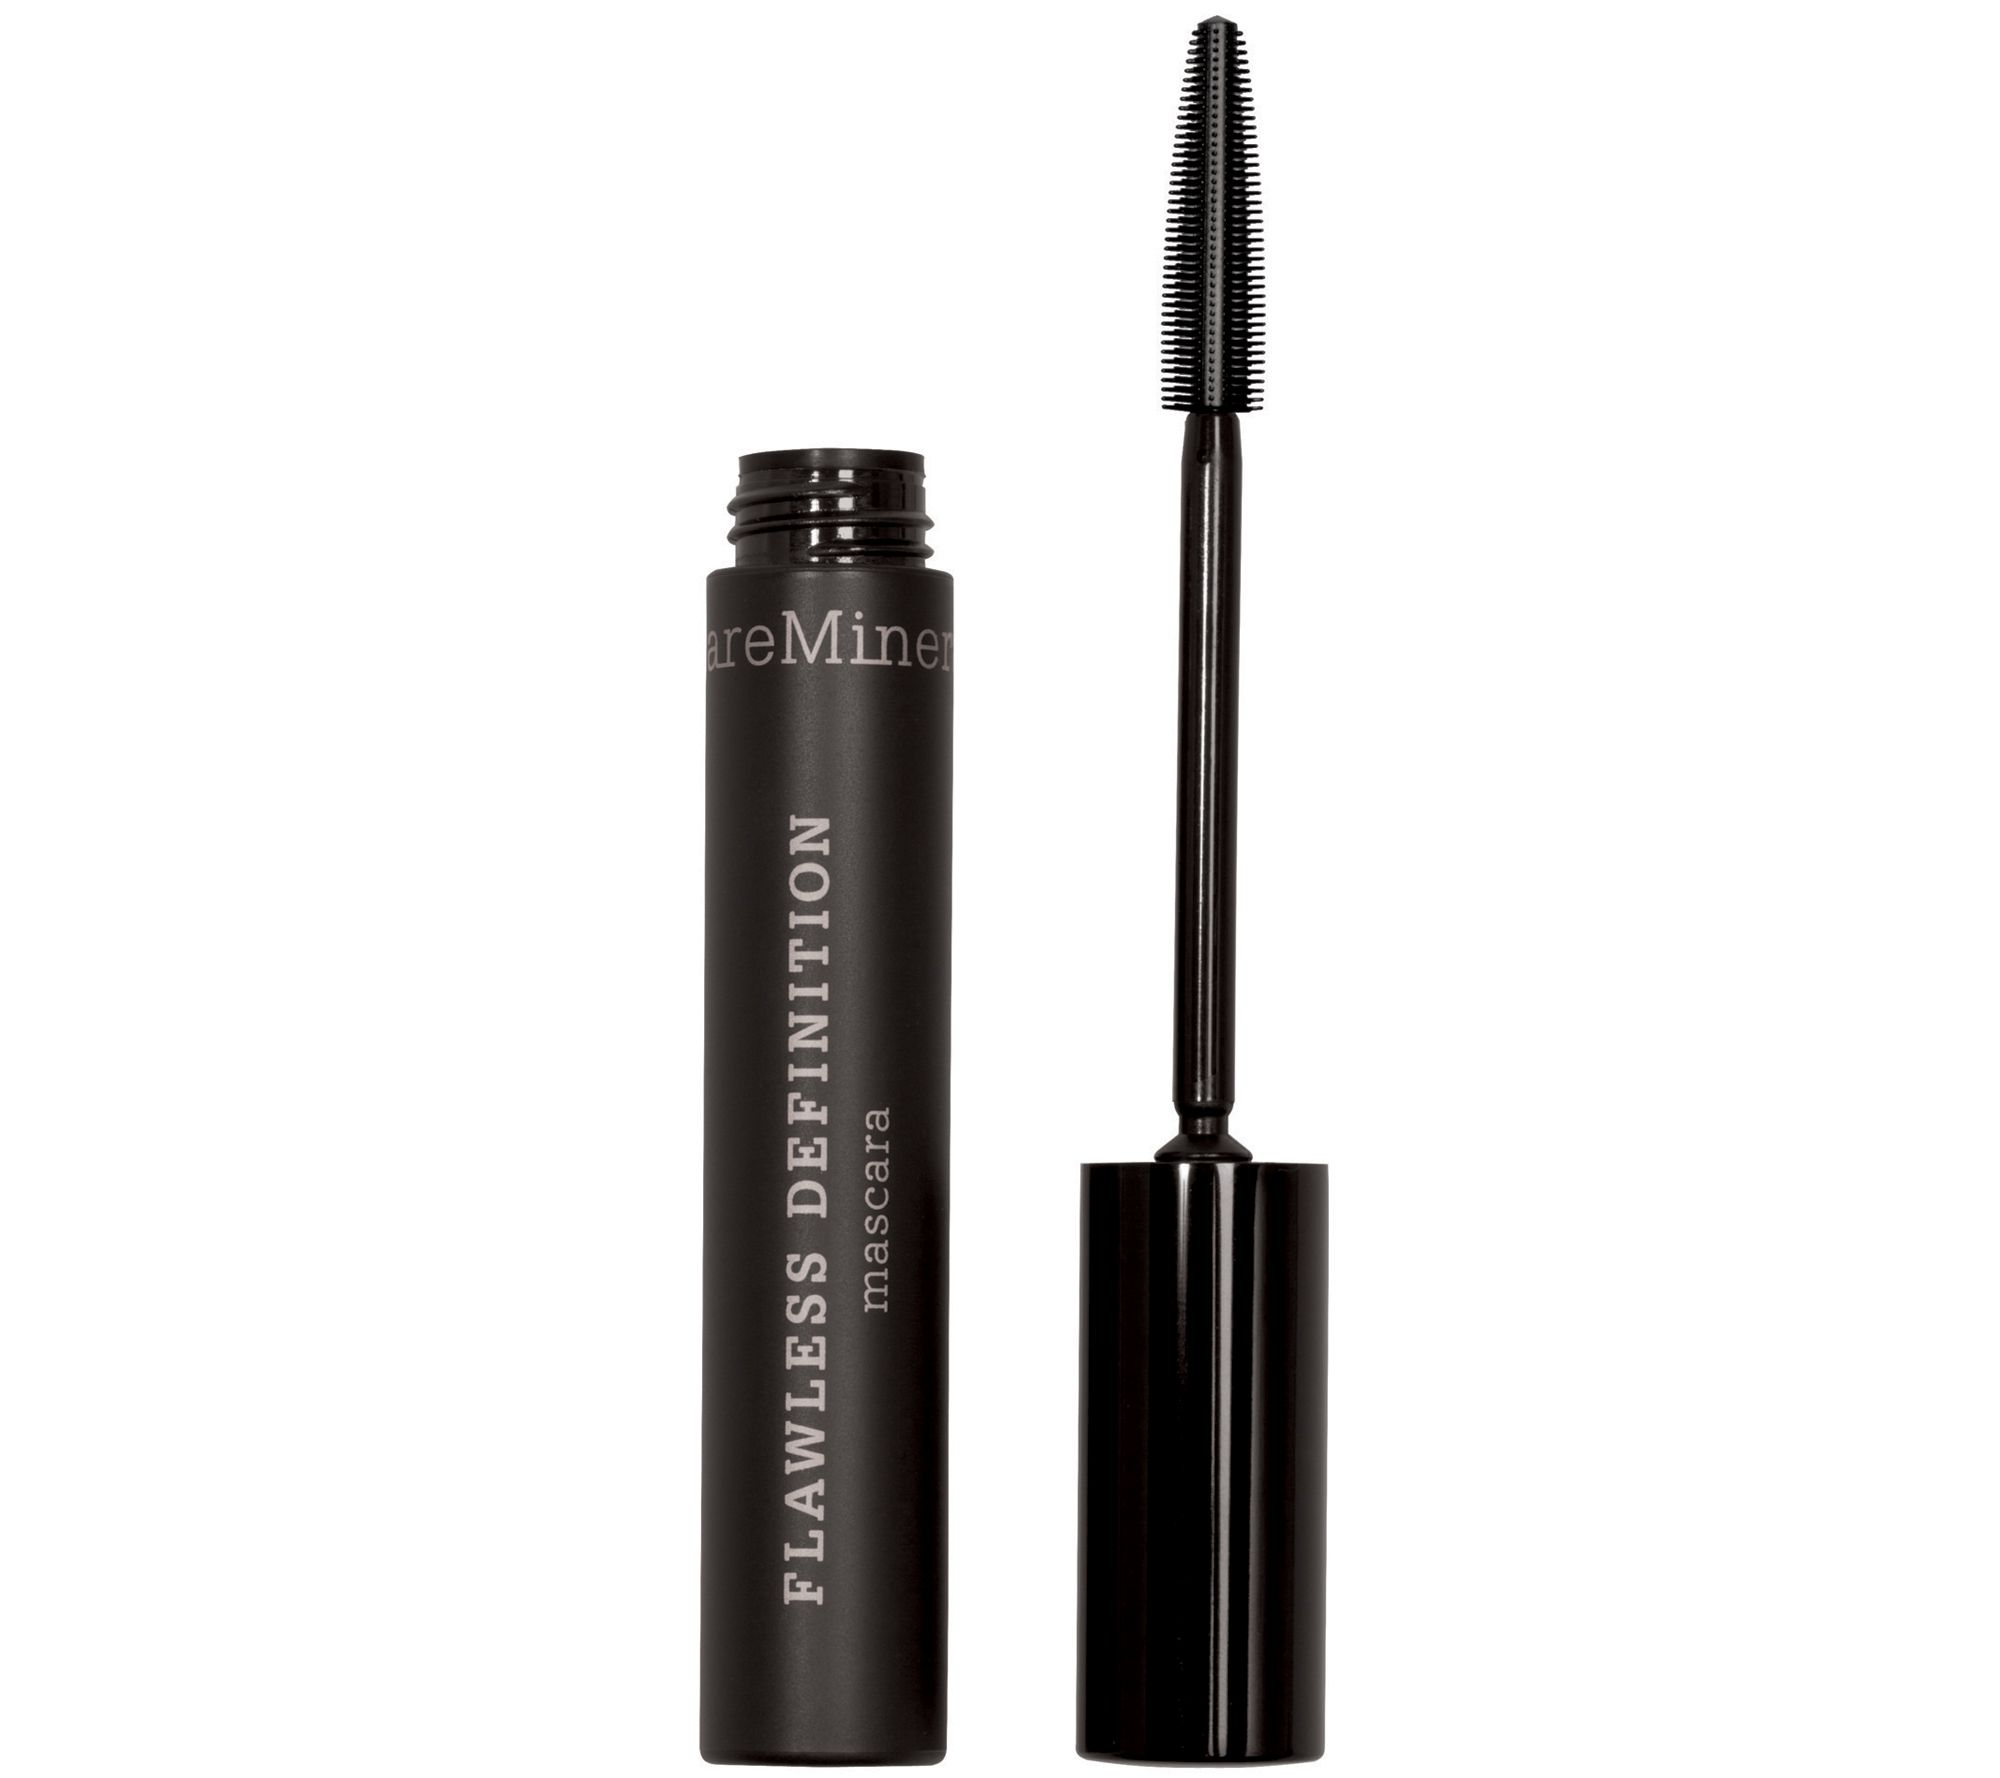 bareMinerals Flawless Definition Mascara - Page 1 — QVC.com